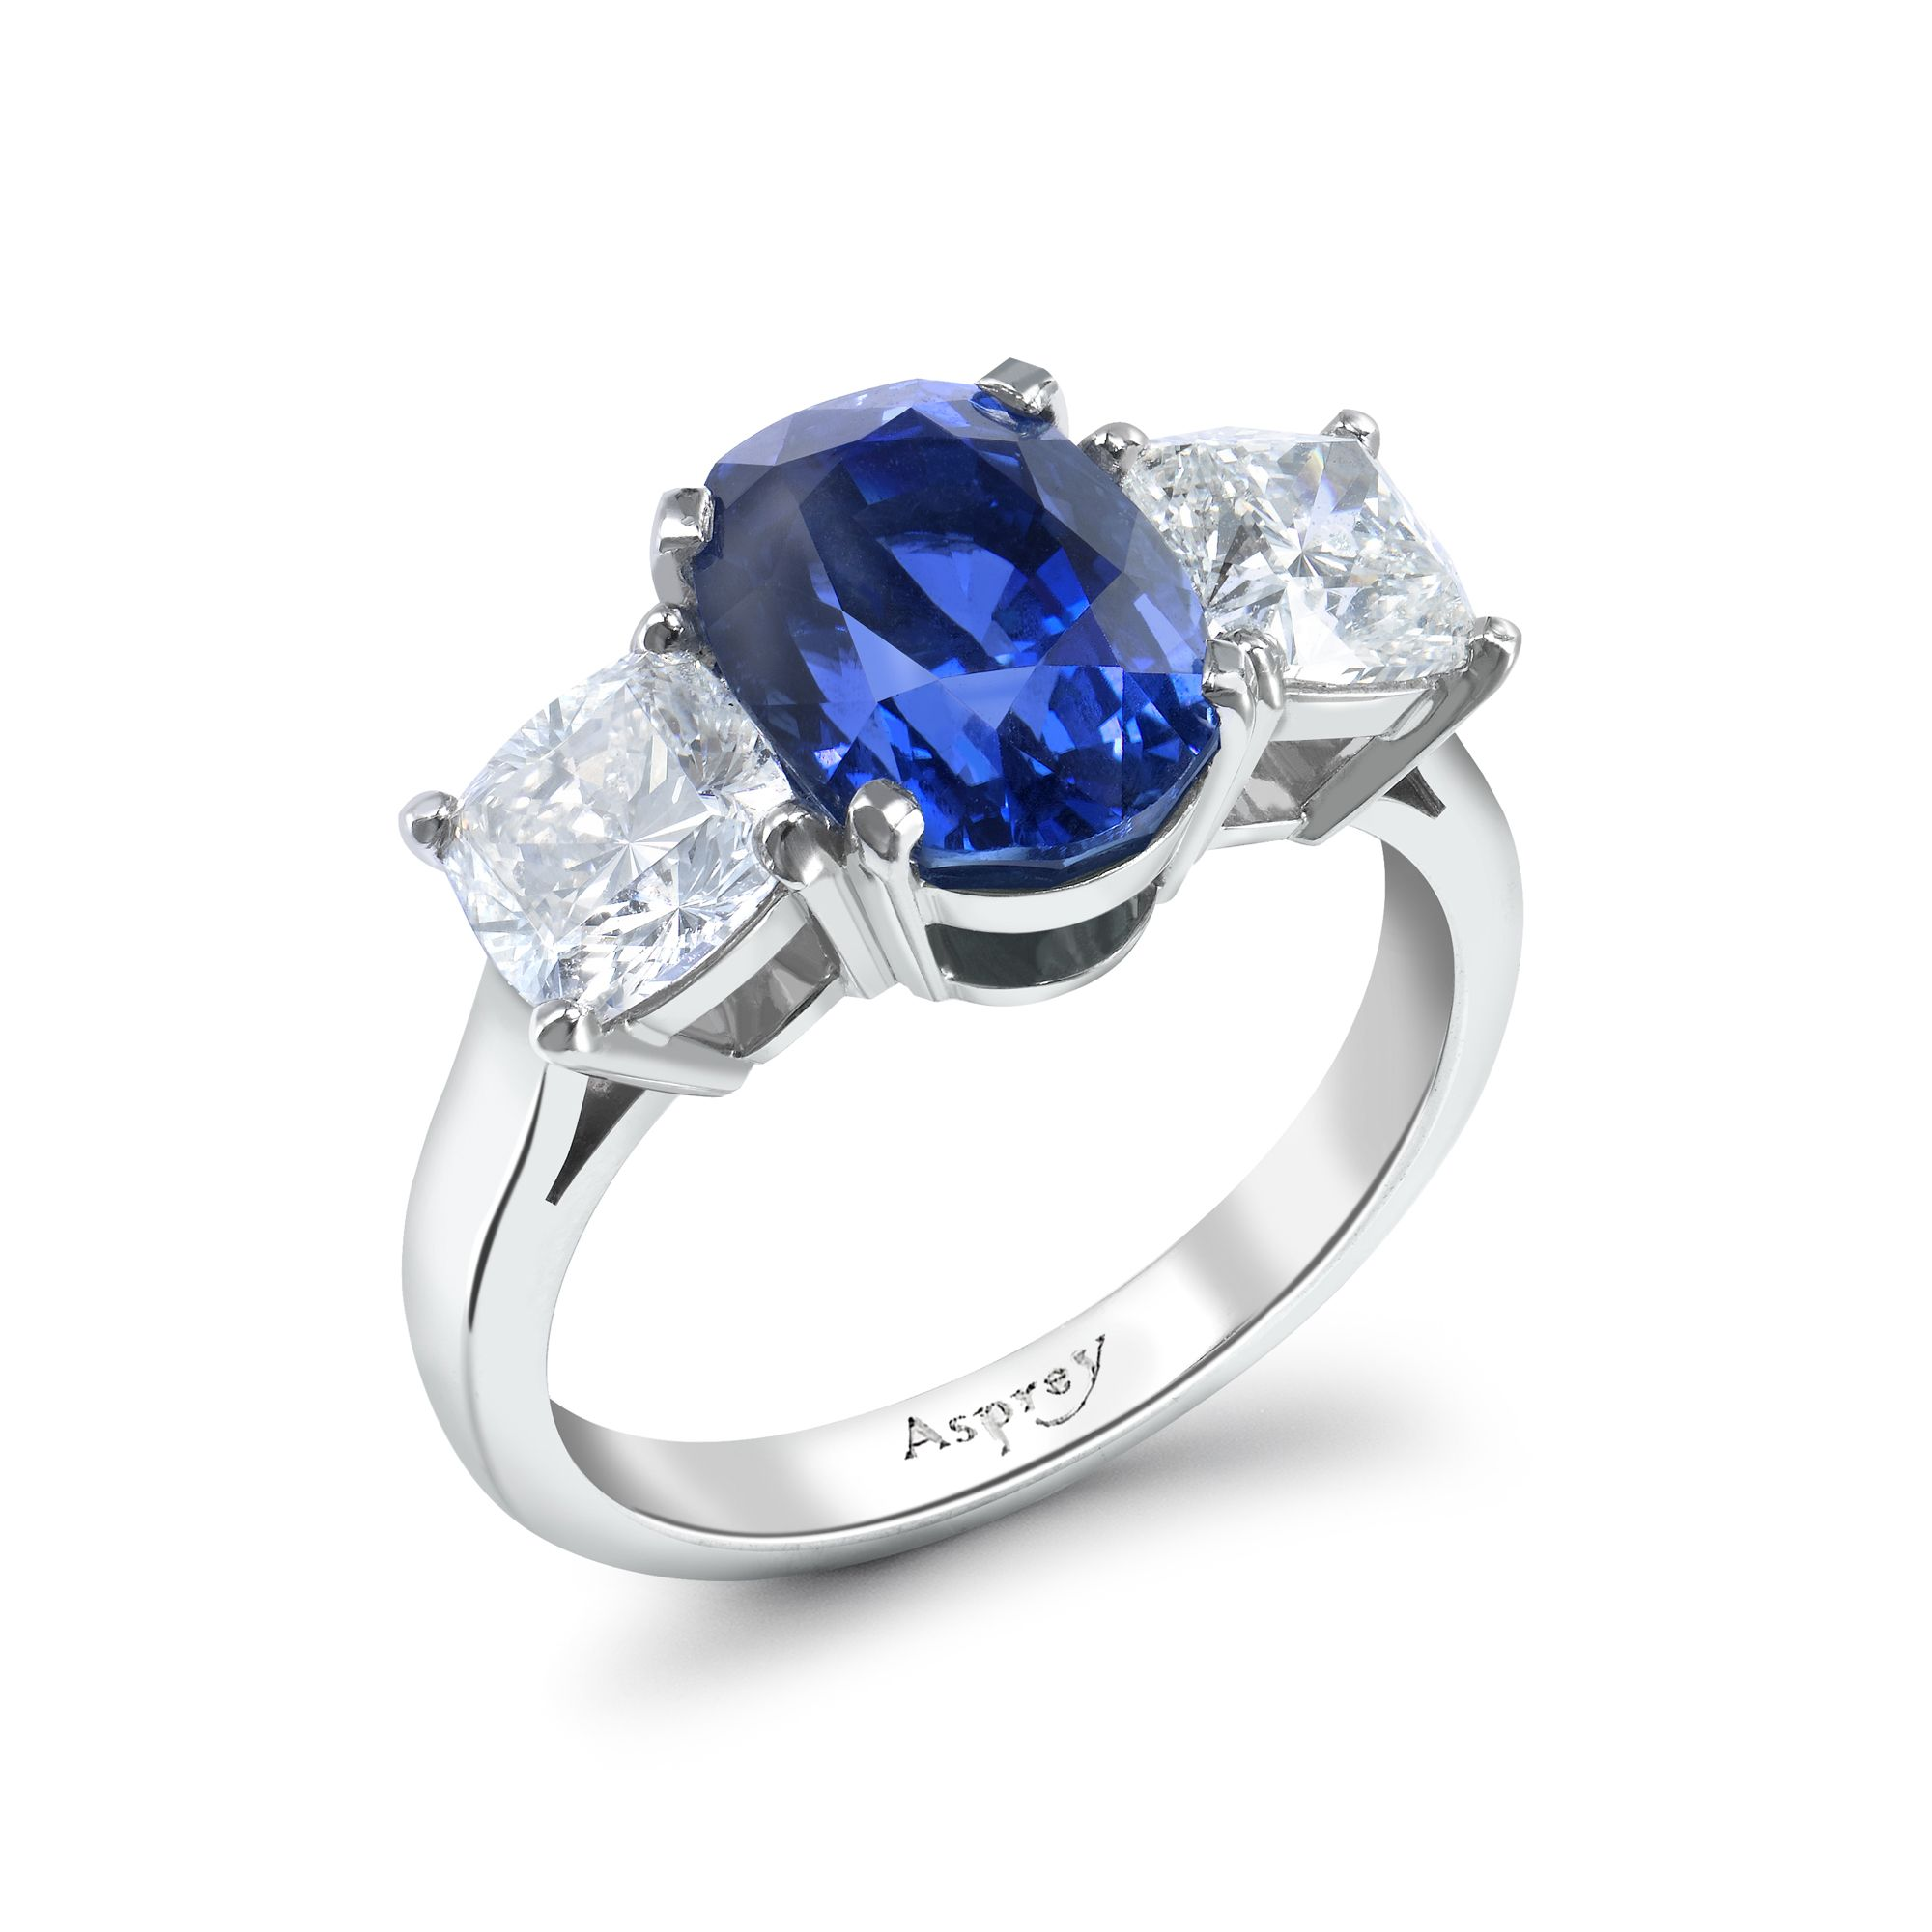 cut sale stone org three at engagement jewelry for diamond dark carat master certified gold img step heat sapphire id copy ring blue no rings greenish j